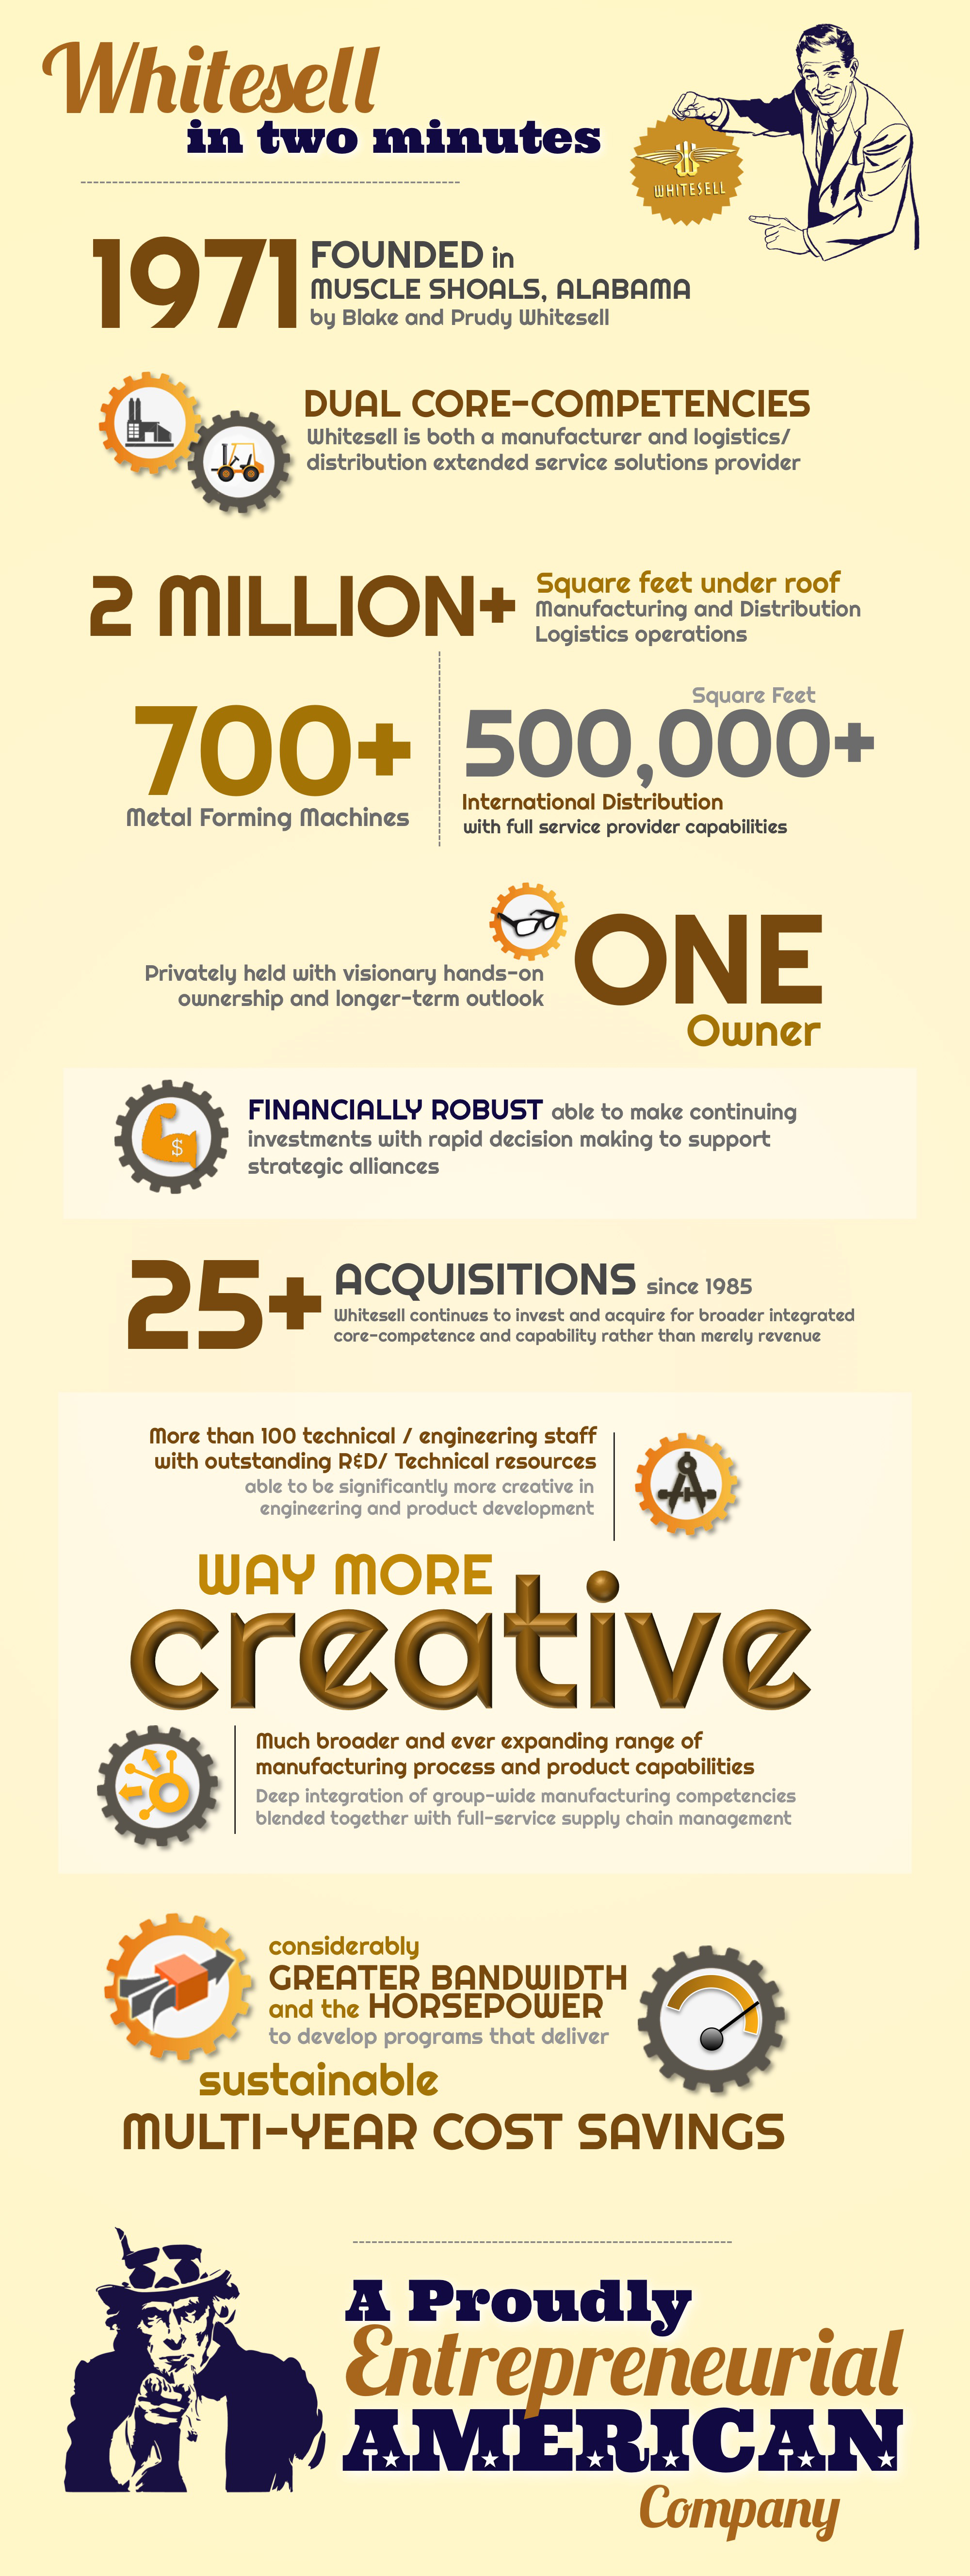 An infographic illustrating the prime takeaways of Whitesell Group. Whitesell was founded in 1971 in Muscle Shoals, Alabama by Blake and Prudy Whitesell. An international footprint with global reach to be anywhere you need to be. Over 2 Million square feet under roof of Manufacturing and Distribution / Logistics operations. Over 700 Metal Forming Machines, many state-of-the-art; and a Master International Distribution Center of more than 300,000 square feet, with 3PL, Kitting, Assembly and broad outsource capabilities. Whitesell is a privately held company that benefits from visionary hands-on ownership with a longer-term outlook than other public competitors. A financially robust entity with rapid decision making, so as be able to make investments in support of strategic and enterprise level deals. Whitesell has made more than twenty-five acquisitions since 1985 investing and acquiring for broader integrated core-competence and capability rather than merely revenue. Whitesell is a substantially more creative supply chain partner, through both superior R&D and Technical capabilities, and a much broader and continually expanding range of core-competent process and product capabilities. Whitesell utilizes a different model of vertical integration with flat management and shared revenue models providing a smarter and more powerful model for leveraging more value out of a supply chain. As a result, Whitesell has considerably greater bandwidth and the horsepower to develop programs, processes, systems and deals that can deliver sustainable, multi-year cost savings for the customer.